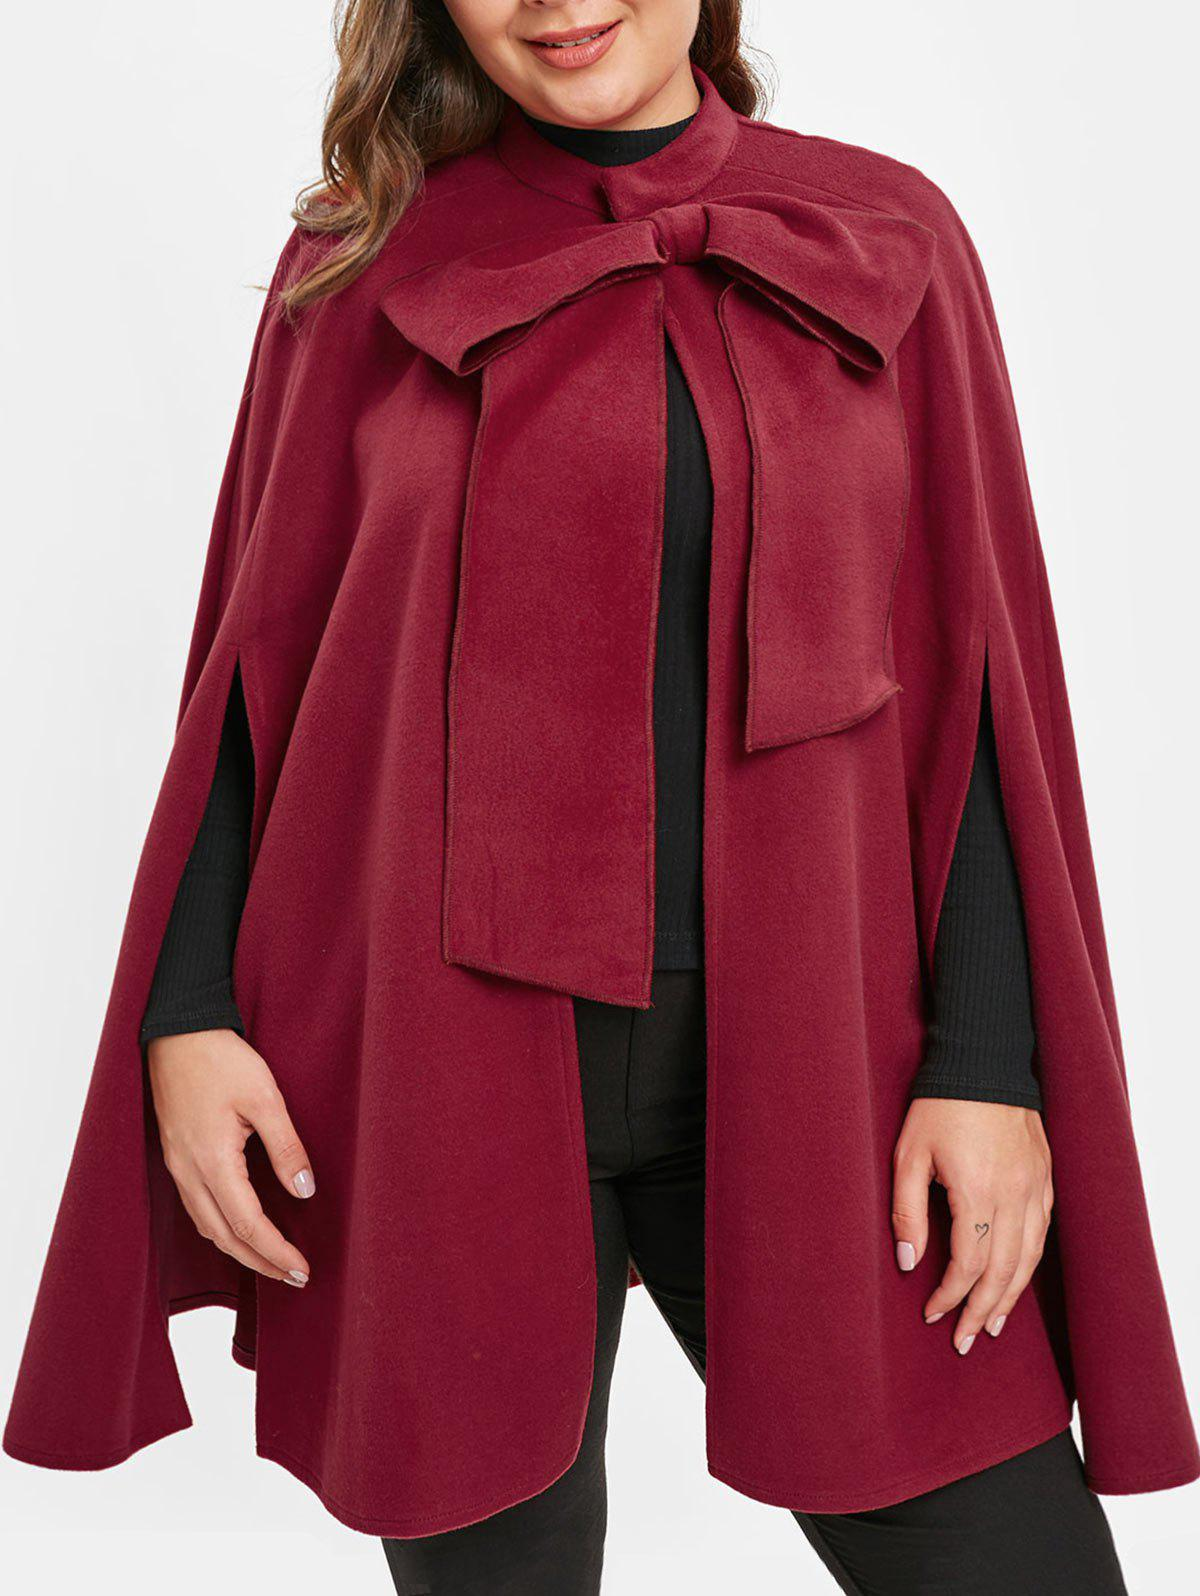 Sale Plus Size Christmas Cape Coat with Bowknot